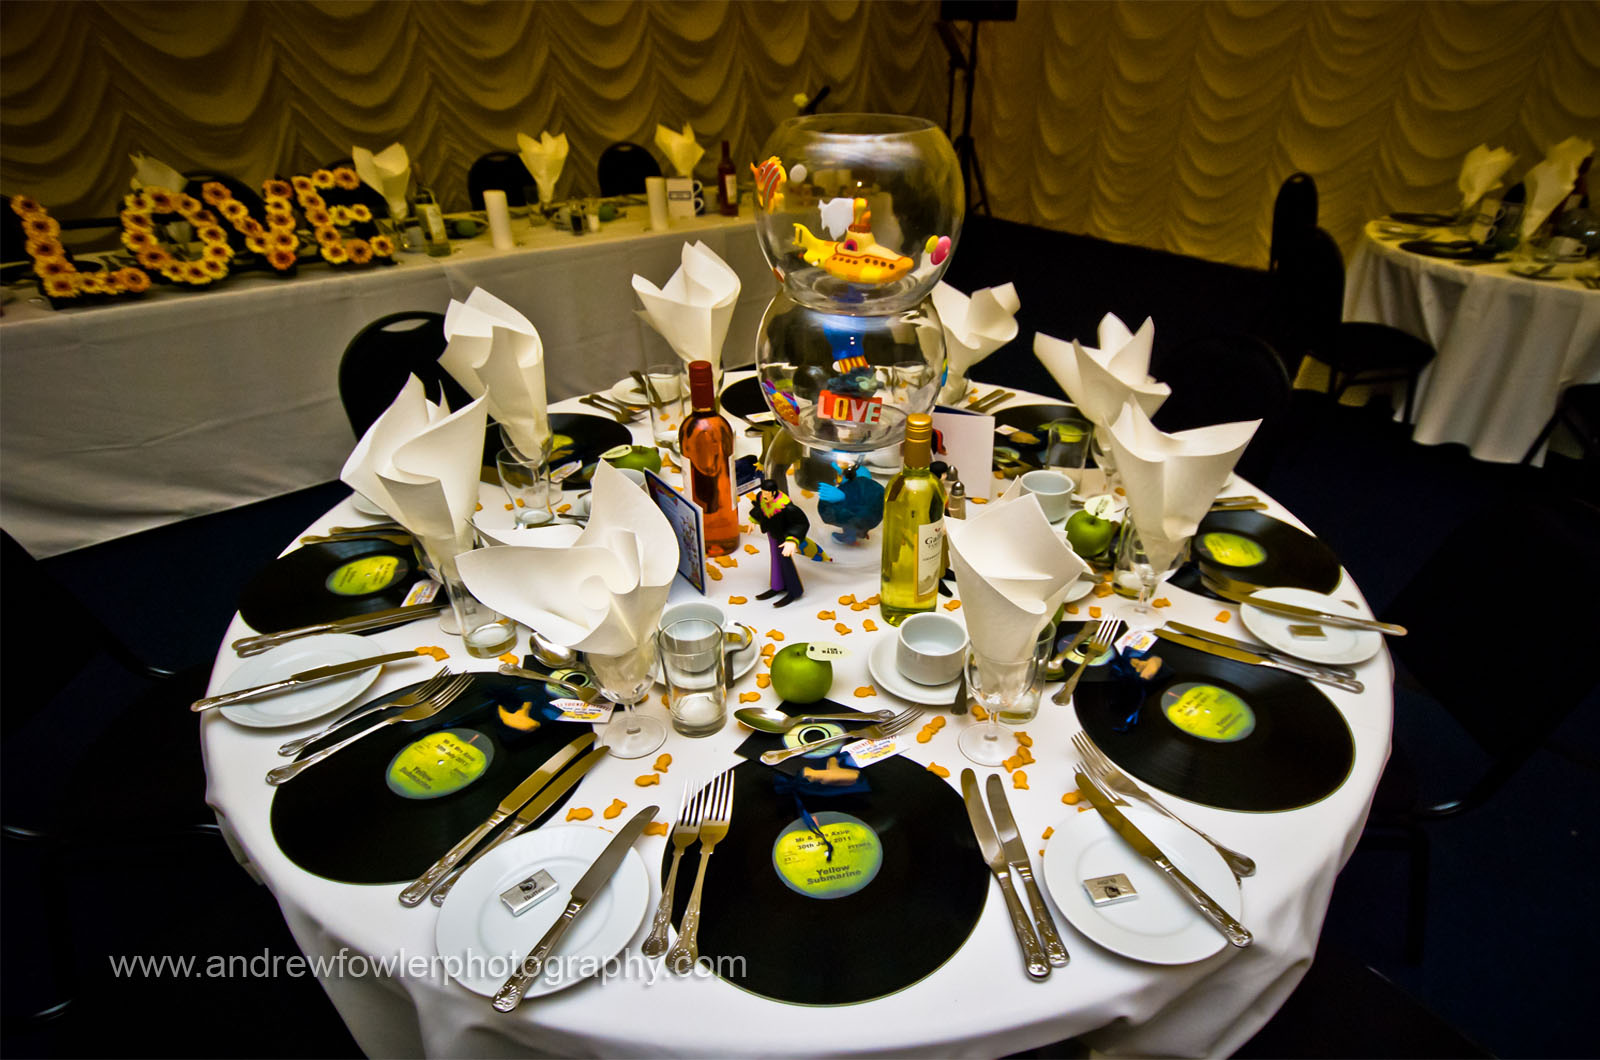 andrew fowler photography beatles themed wedding liz dylan. Black Bedroom Furniture Sets. Home Design Ideas